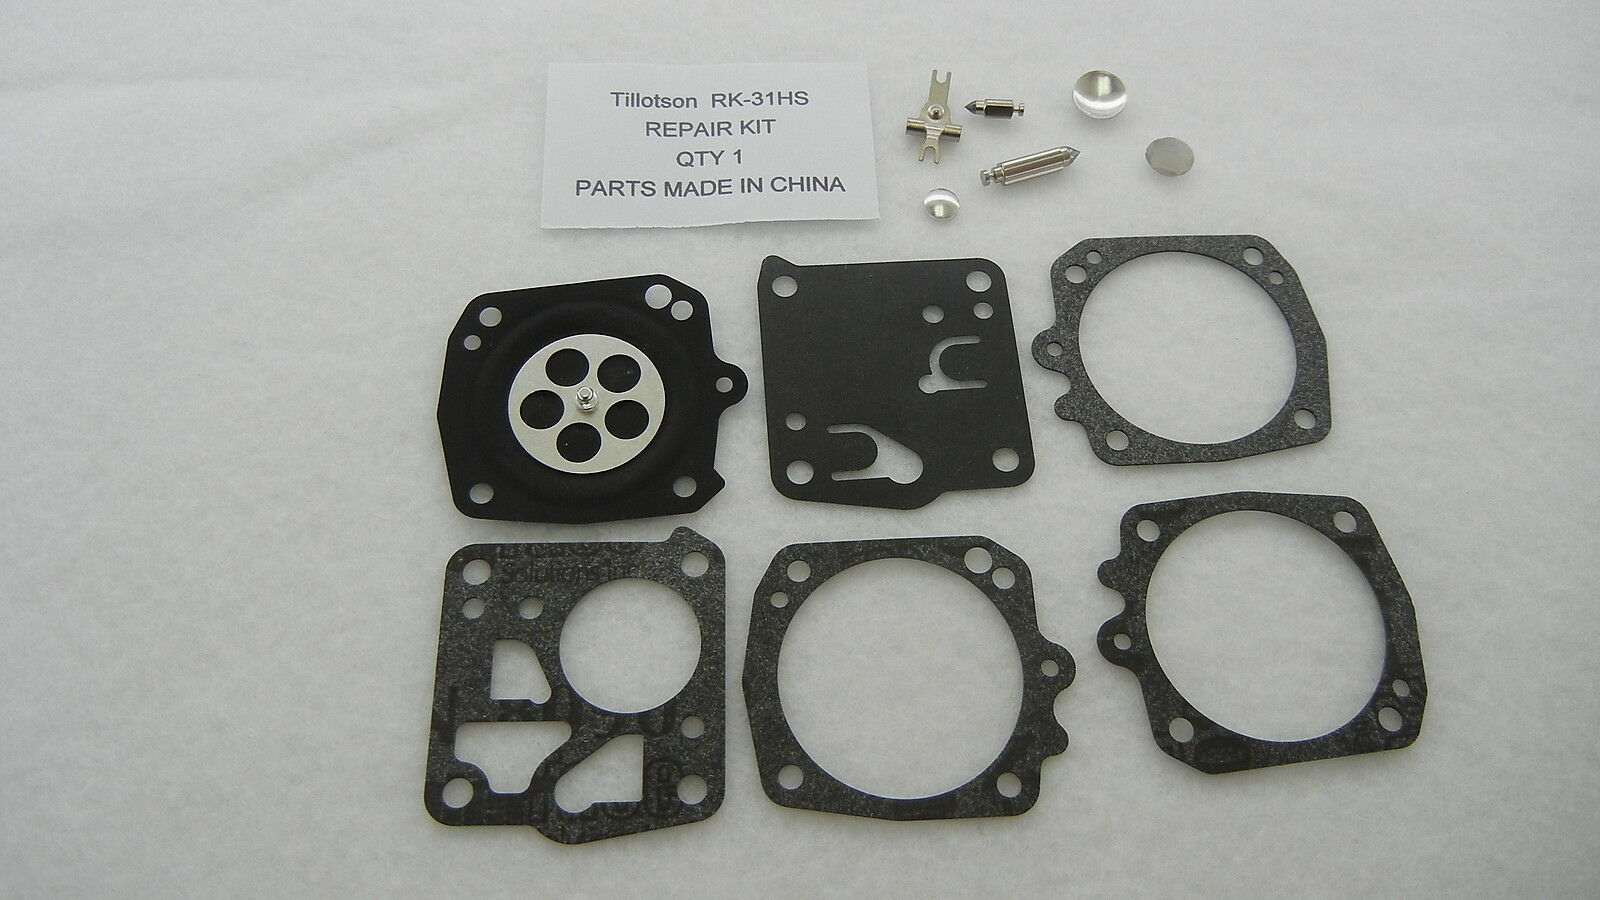 Carburetor rebuild kit replaces Tillotson RK-31HS